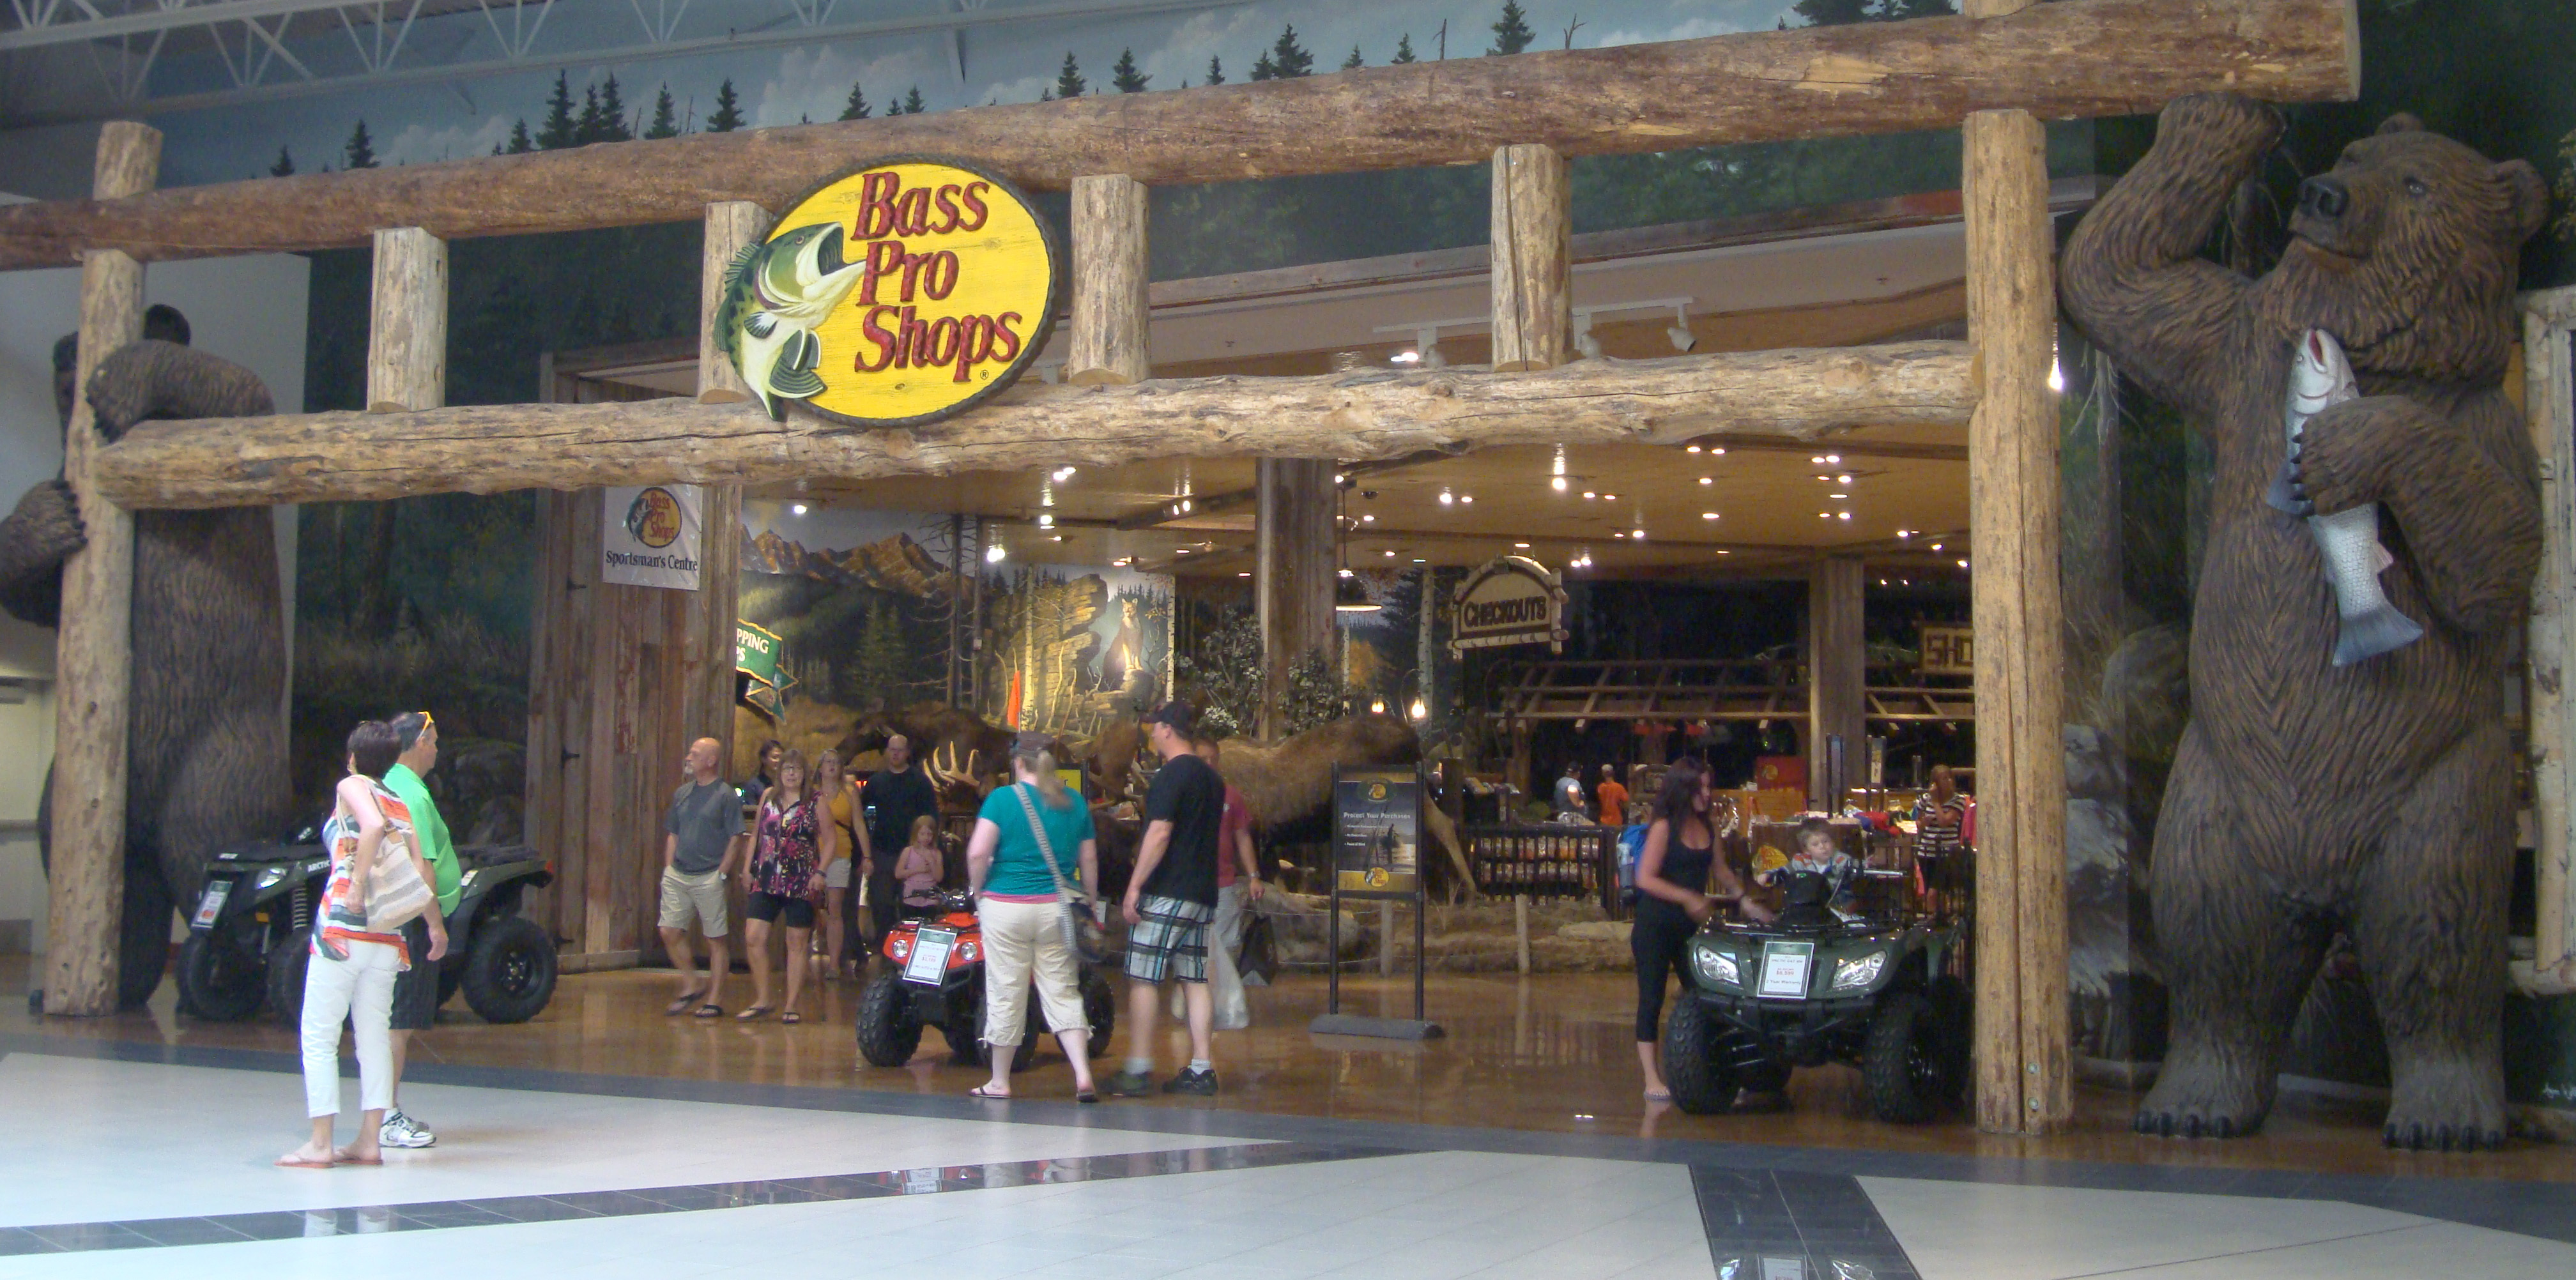 About Bass Pro Shops Tacoma. The first thing you need to do as soon as you enter our lobby is look around and up! You will be amazed at how artisans have captured the beauty and outdoor opportunities found in the Pacific Northwest. Massive log and rock work, a large indoor aquarium and water fall feature stocked with native fish species, hand Location: S Hosmer St, Tacoma, , WA.